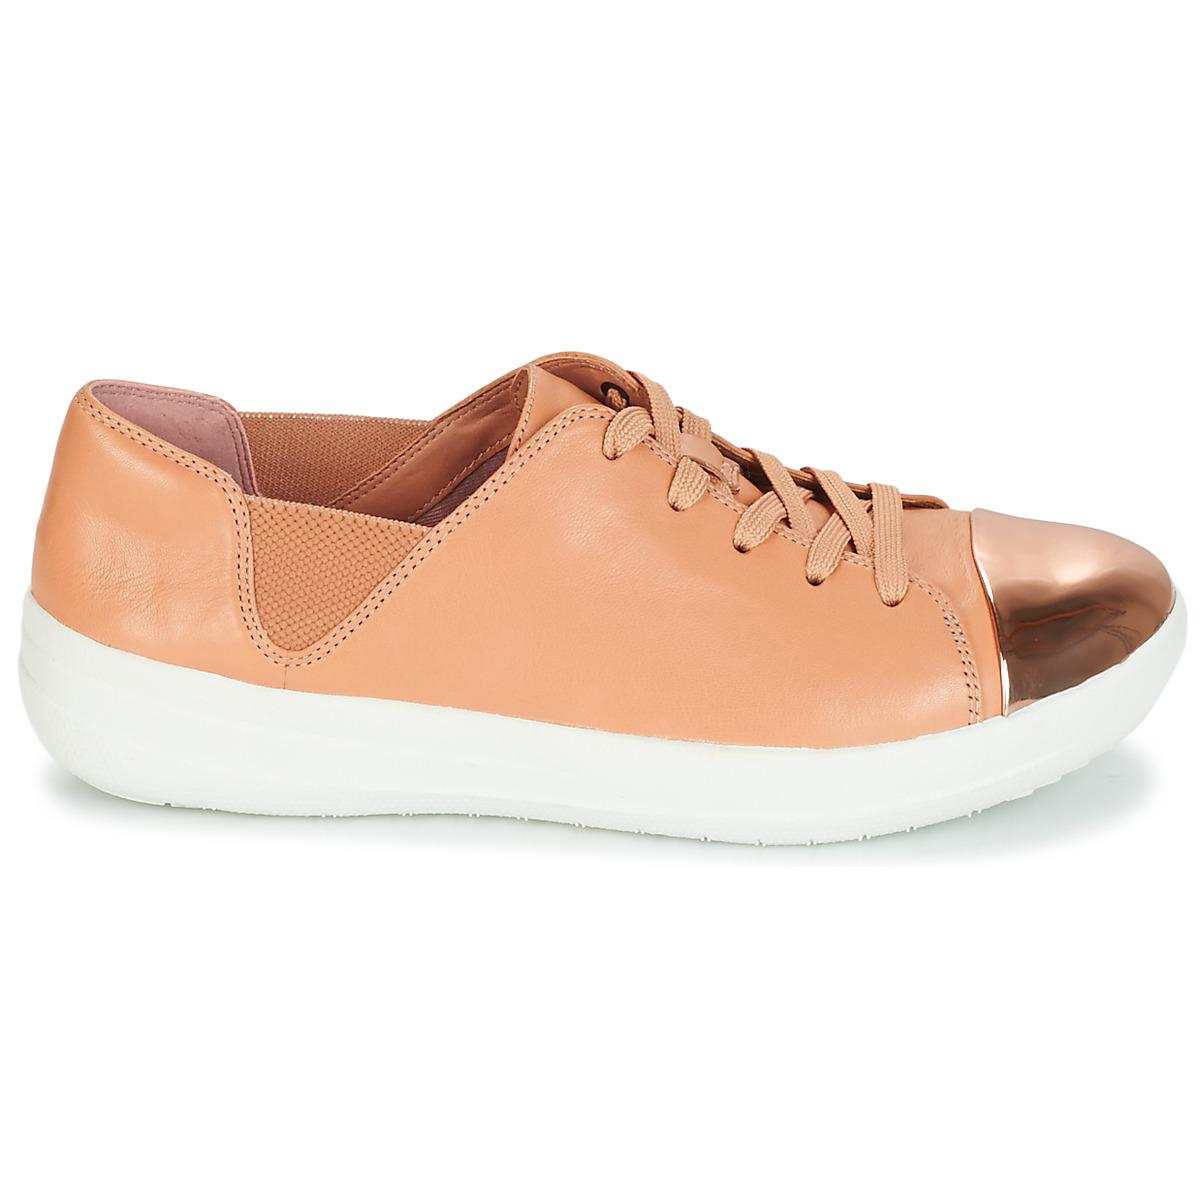 dac53f2f1b146 Fitflop - Natural F-sporty Mirror-toe Sneakers Women s Shoes (trainers) In.  View fullscreen